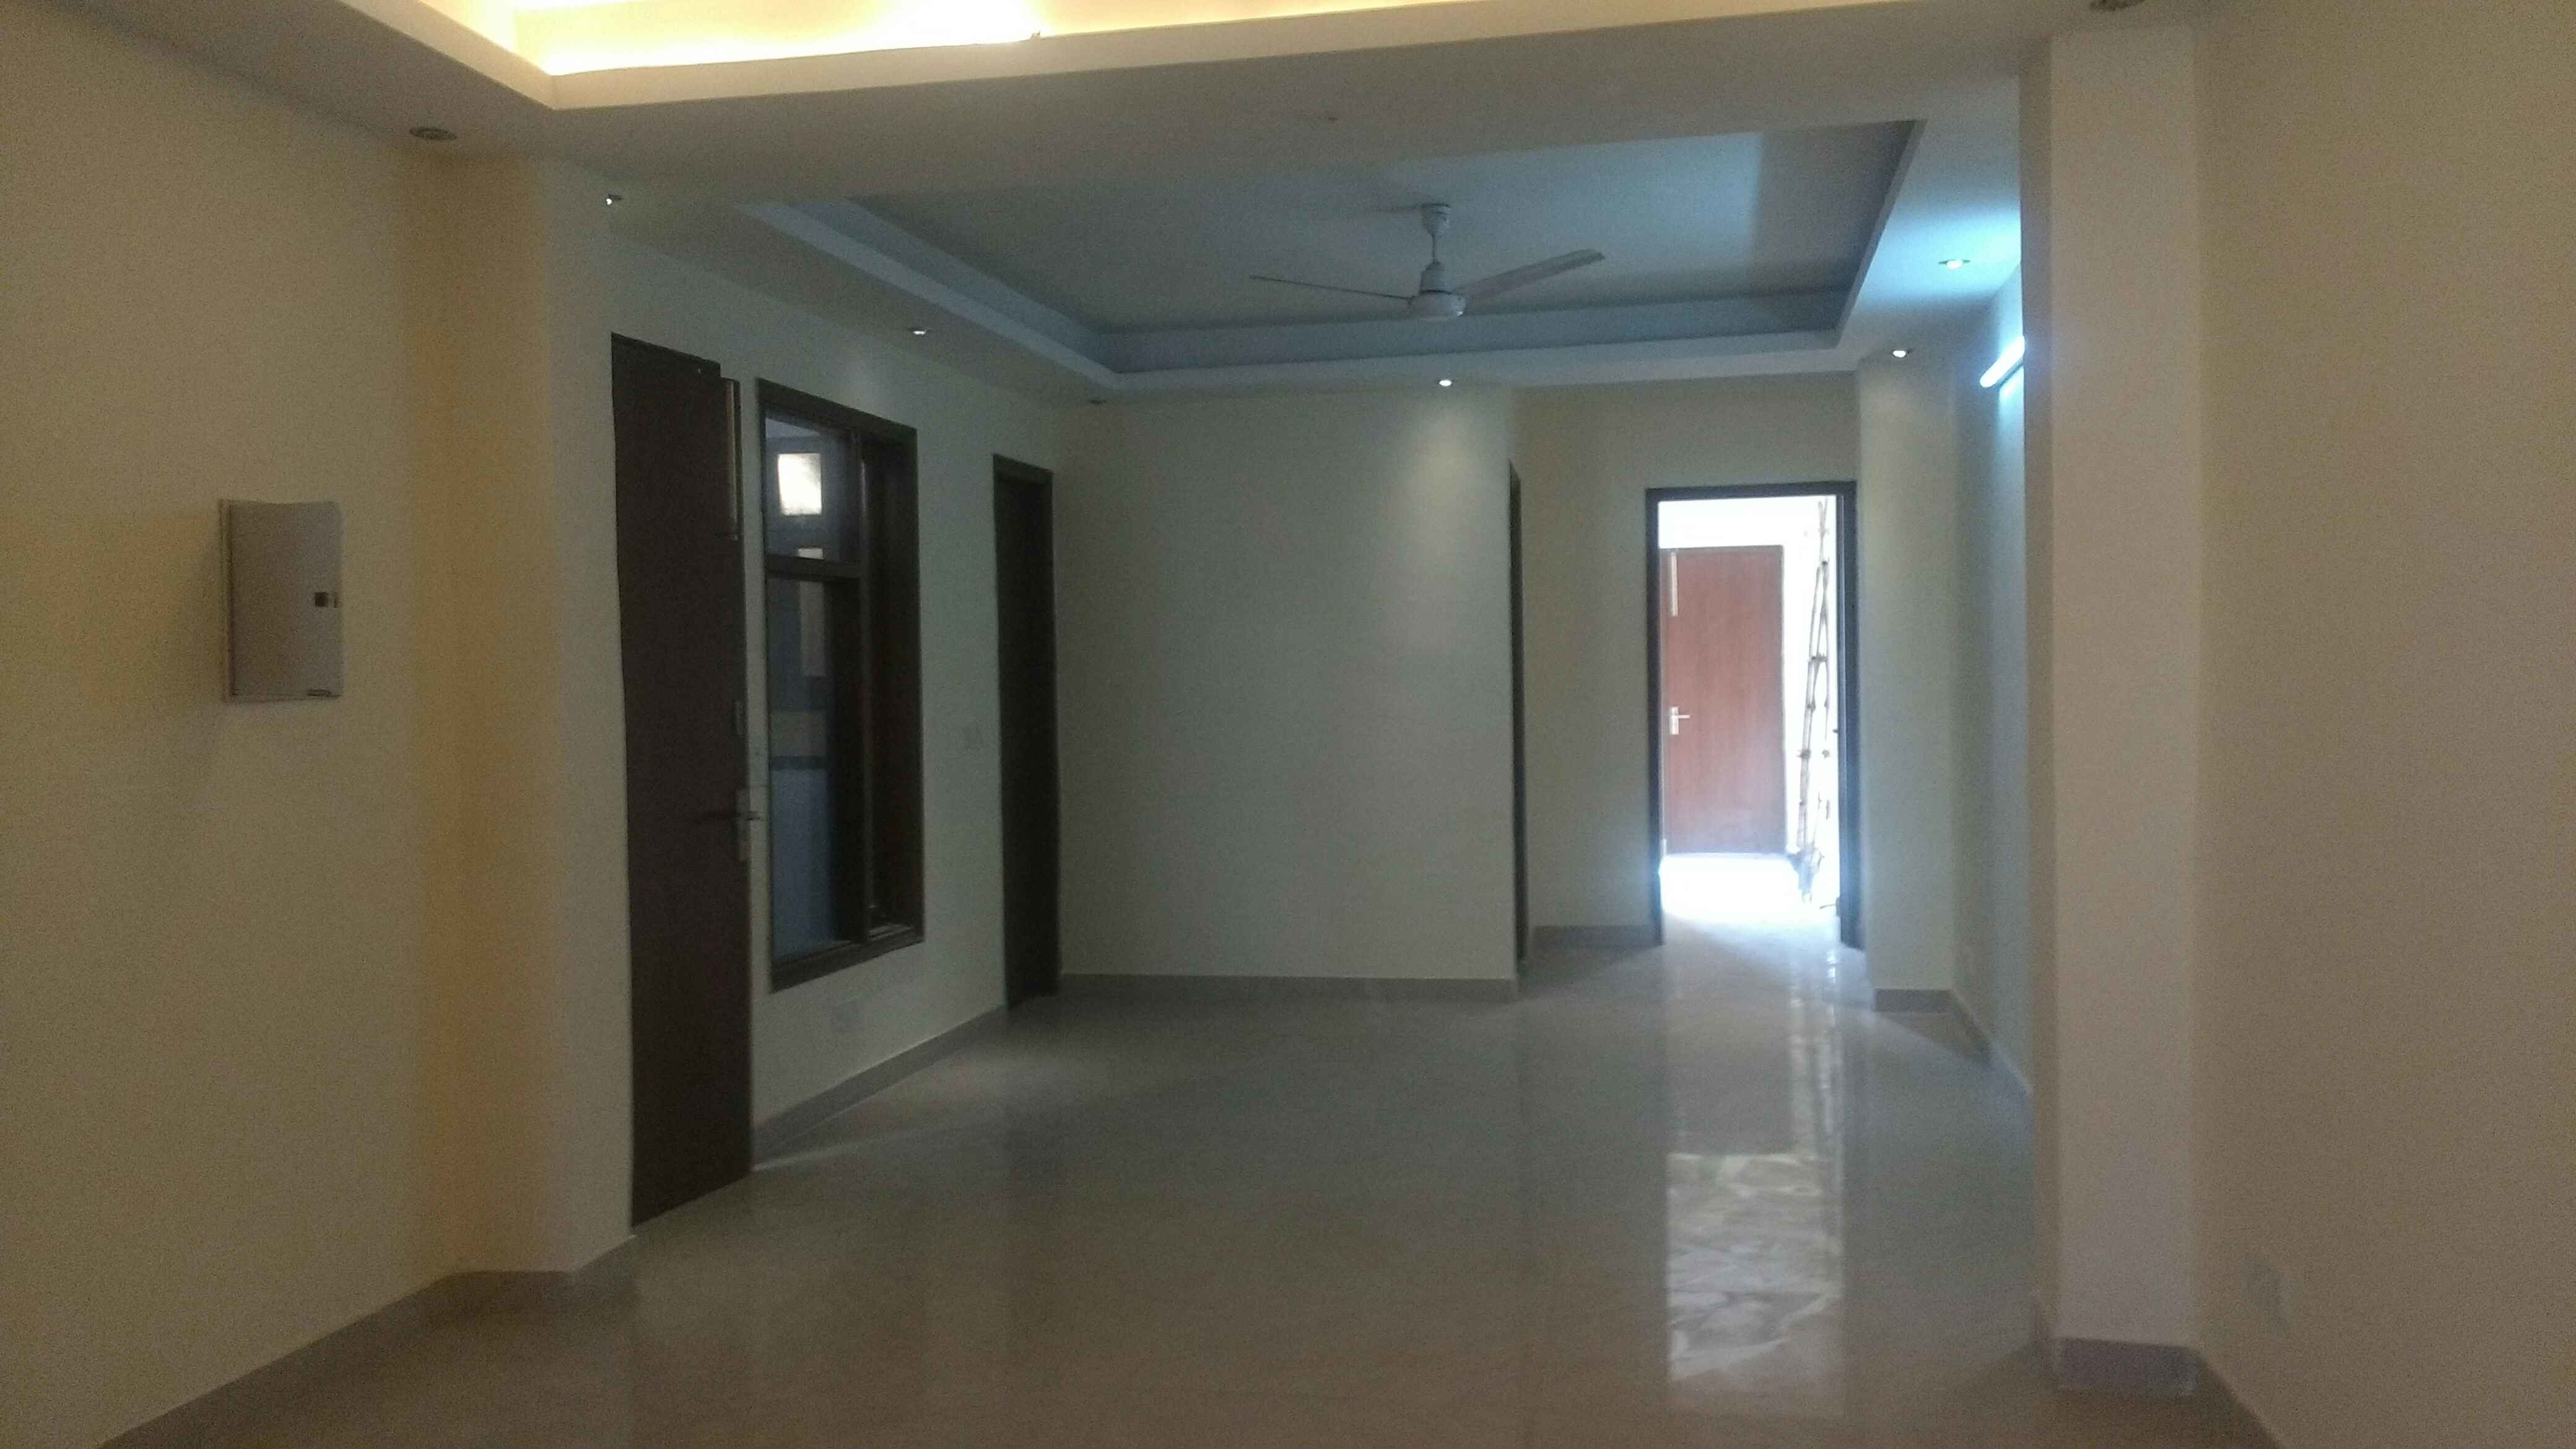 1800 sq ft 3BHK 3BHK (1,800 sq ft) Property By Daksh Property In Project, Chattarpur Enclave Phase 2